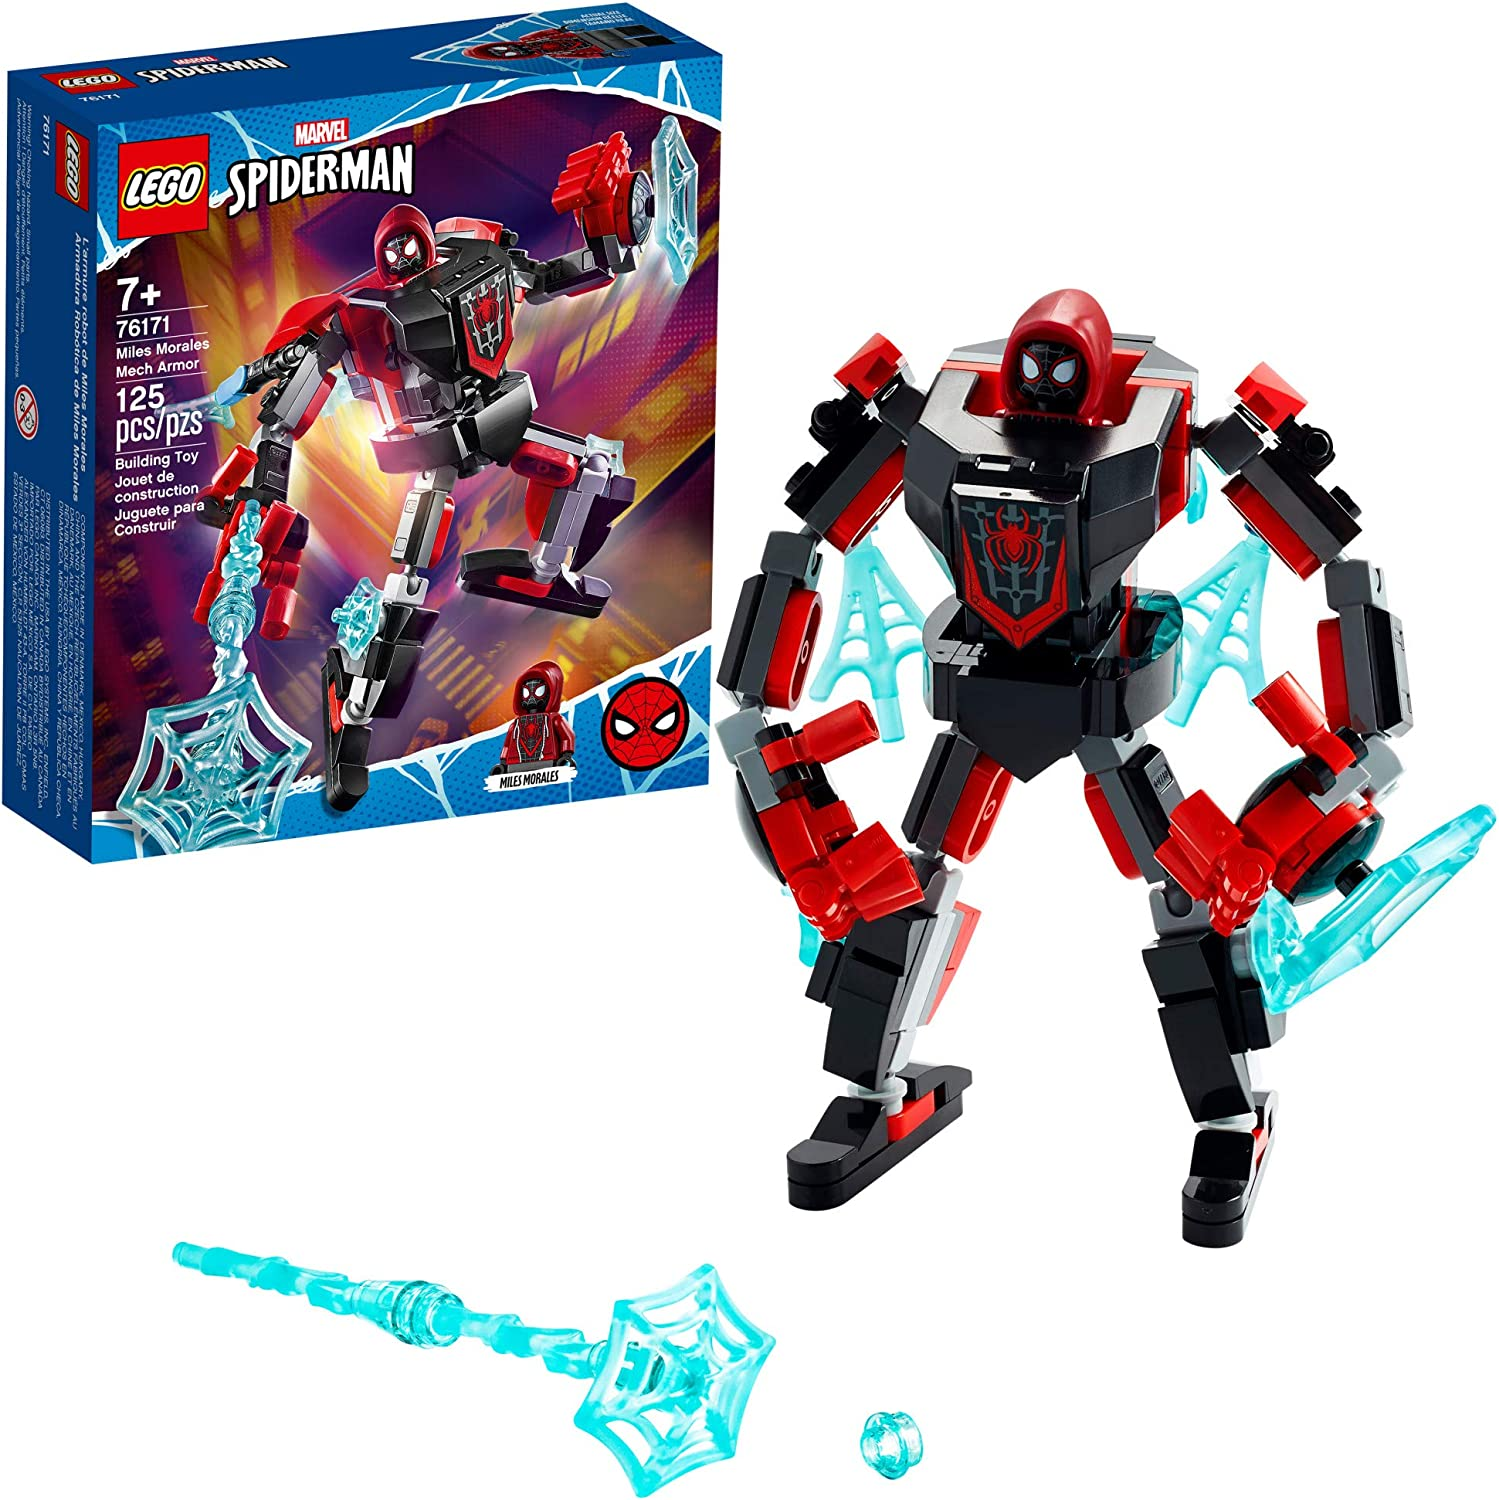 LEGO Marvel Spider-Man Miles Morales Mech Armor 76171 Collectible Construction Toy, New 2021 (125 Pieces)